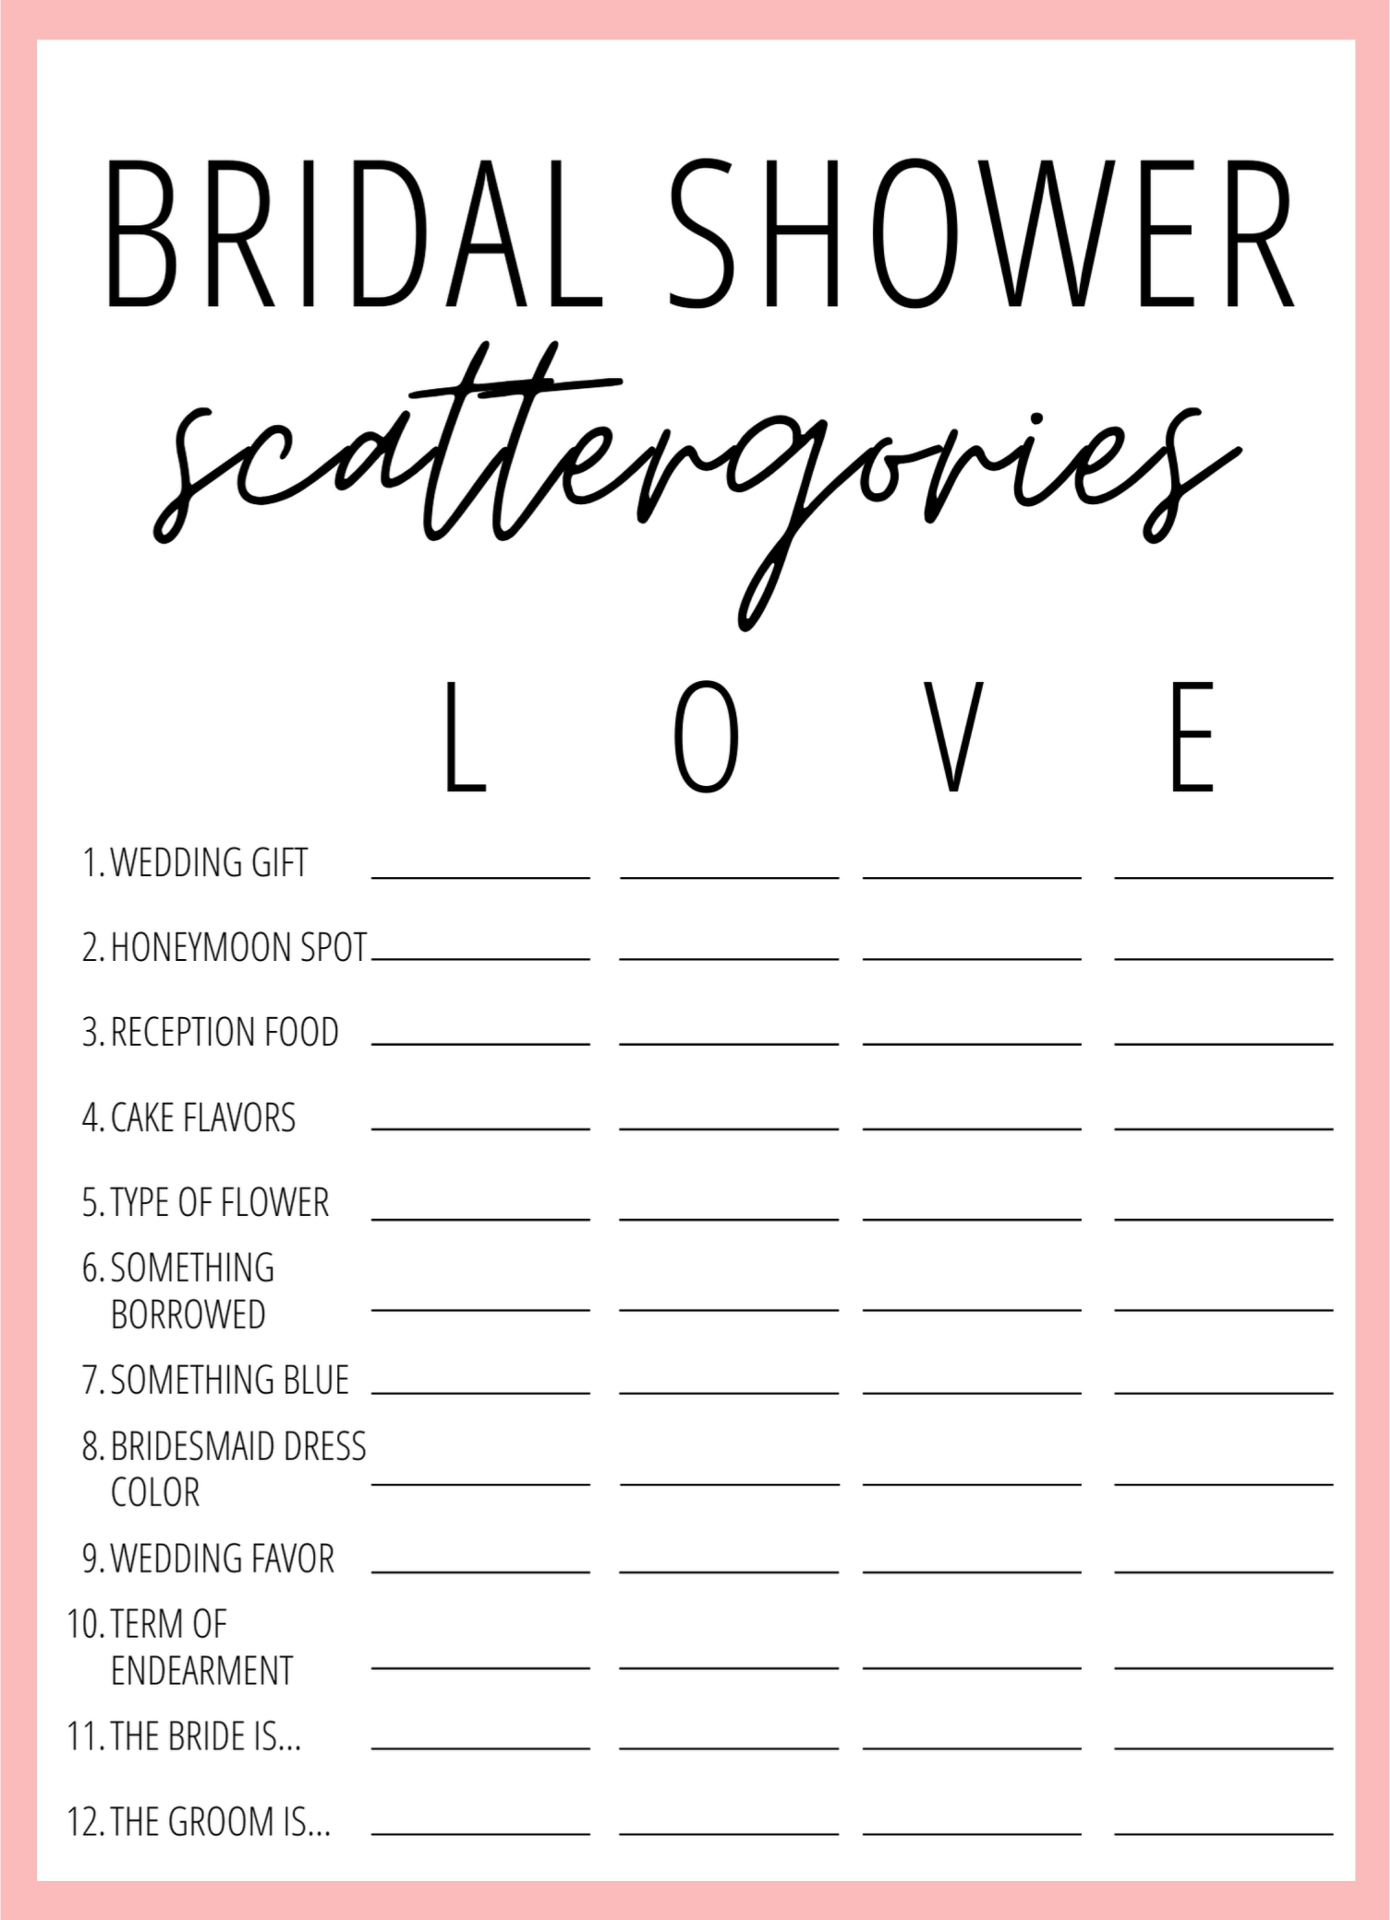 Printable Bridal Shower Scattergories Game